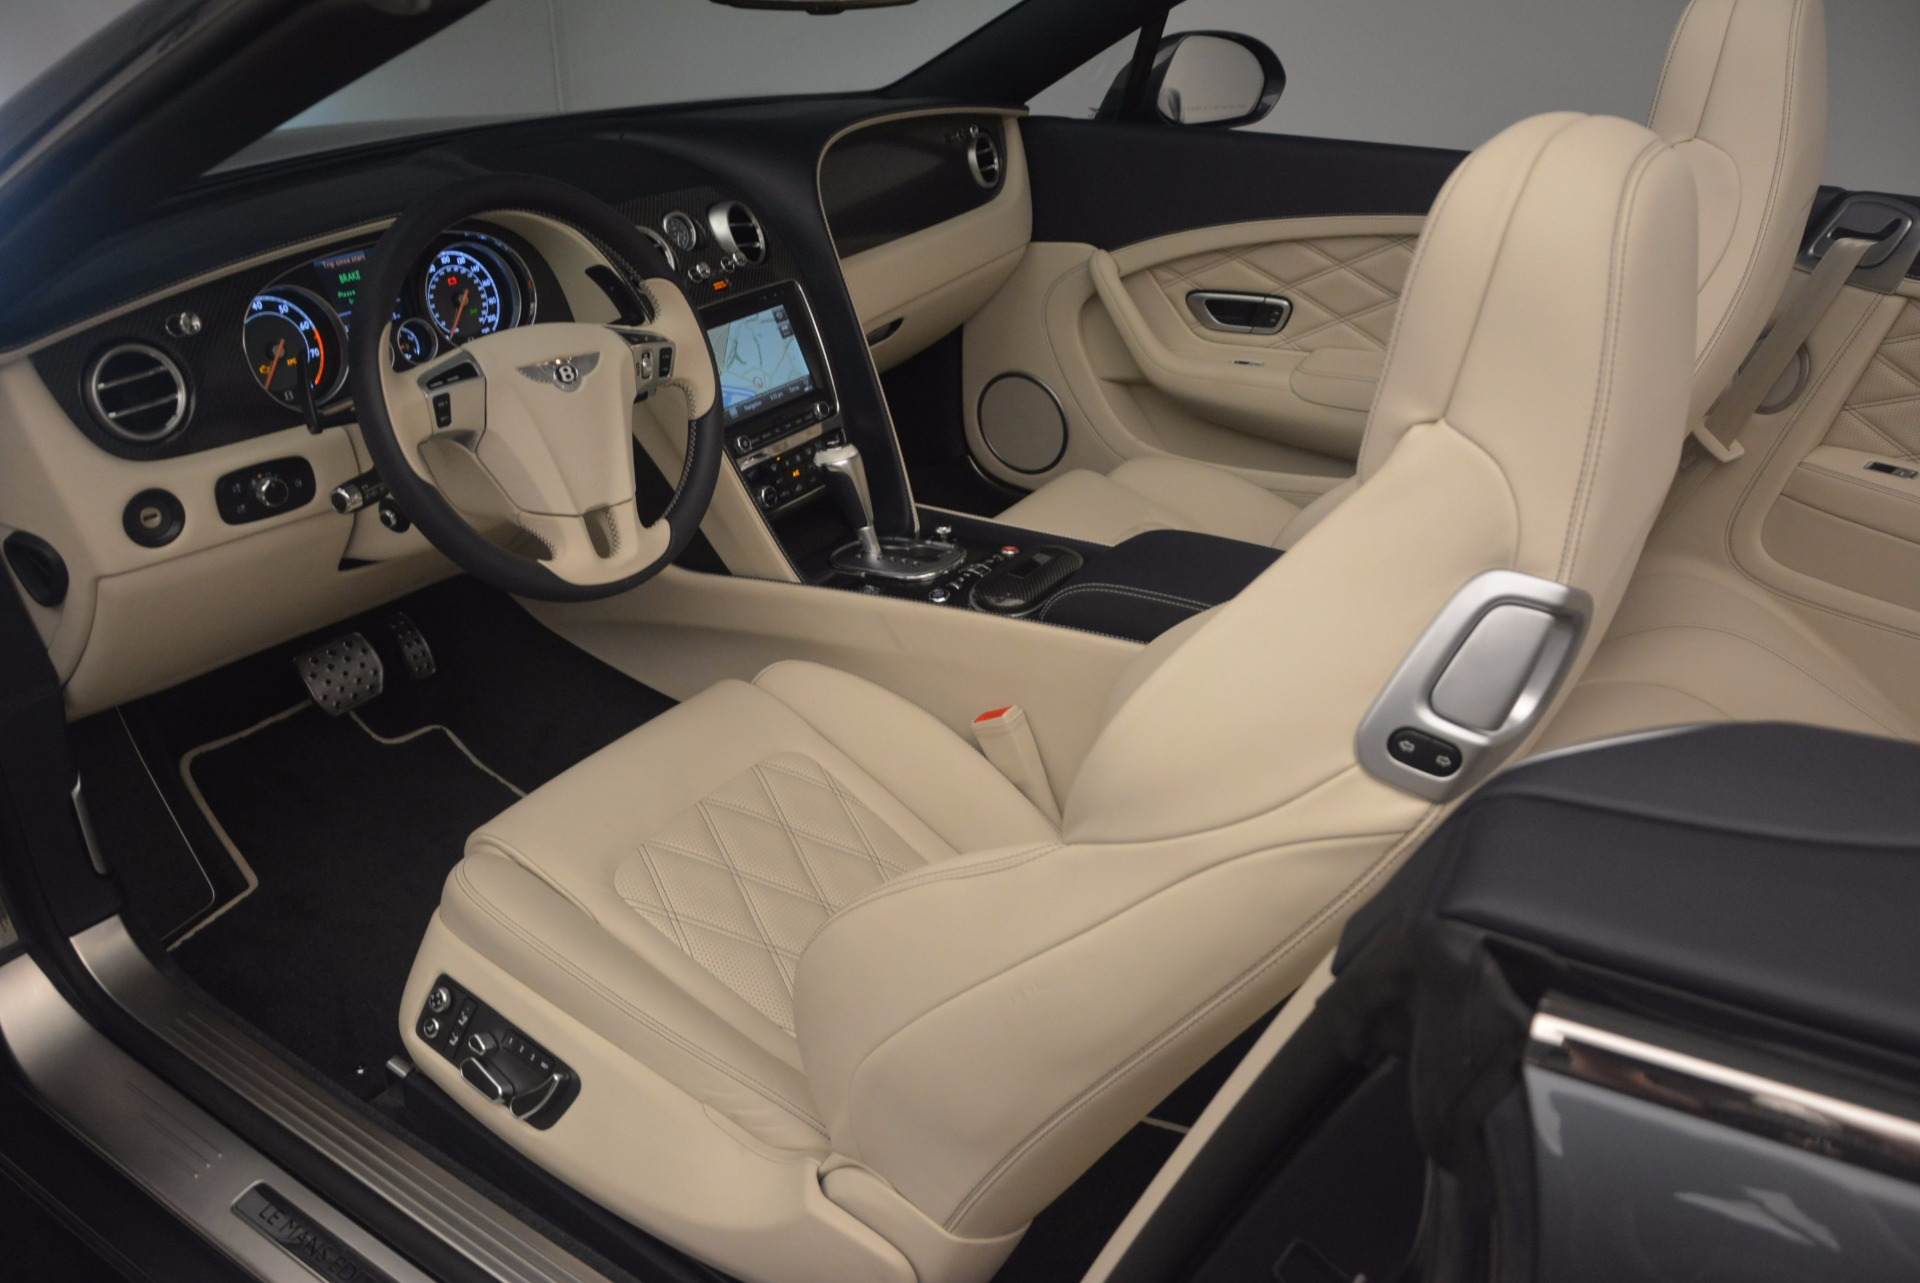 Used 2013 Bentley Continental GT V8 Le Mans Edition, 1 of 48 For Sale In Westport, CT 1288_p33